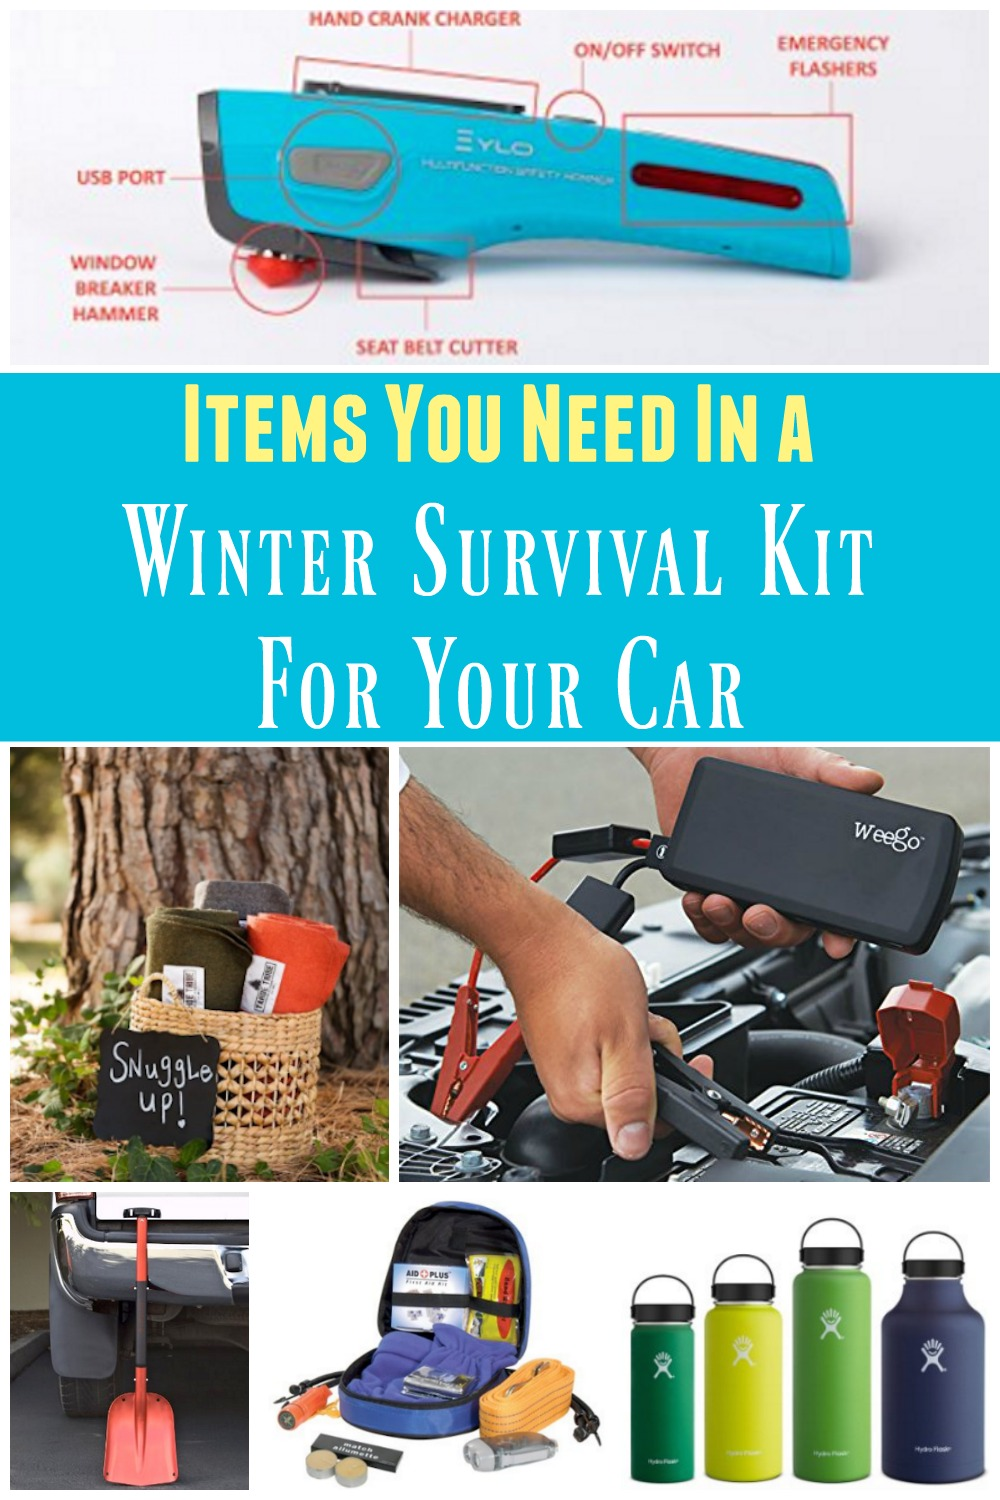 need for survival 12 tools you need for survival preparing for emergency situations and natural disasters may seem overwhelming—but it doesn't need to be we're here to make it as easy as possible.